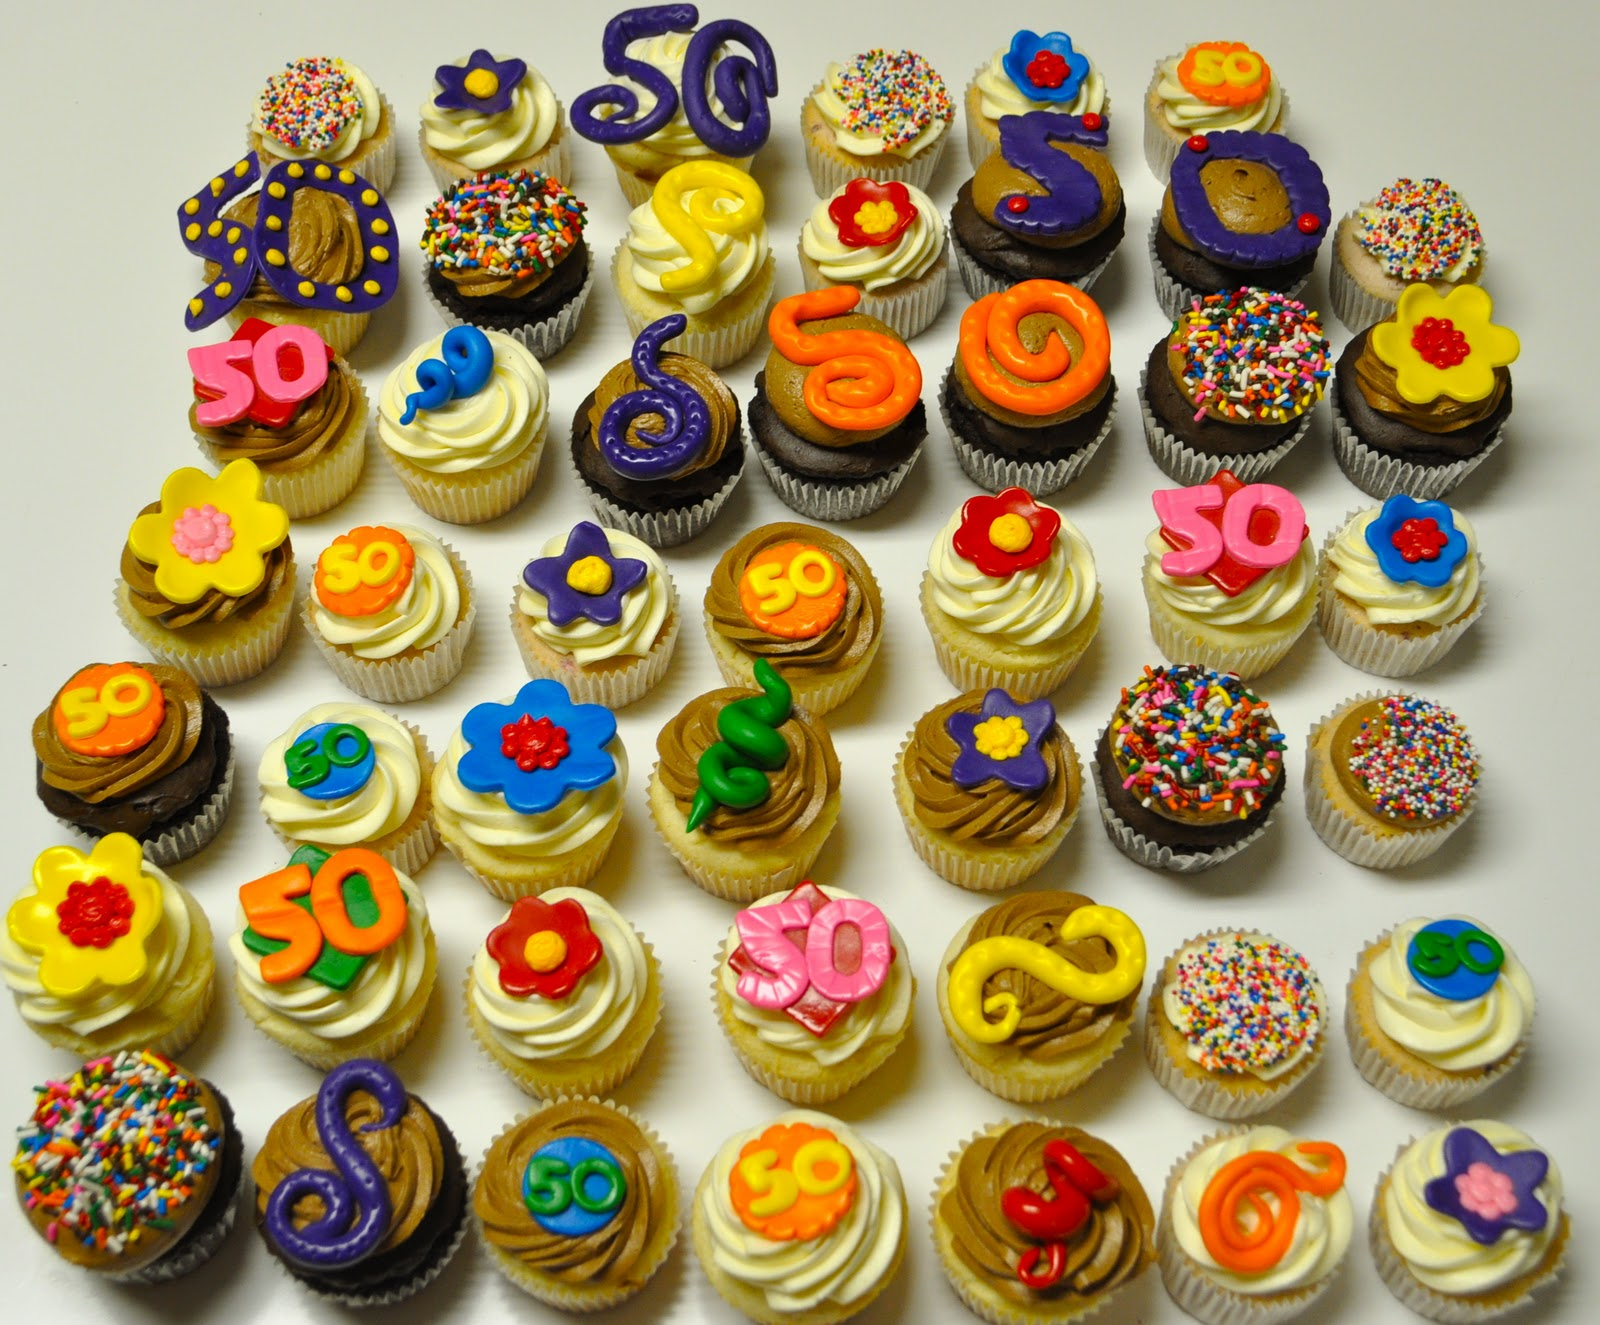 50th Birthday Cupcakes  sc 1 st  Coolest Cupcakes & Coolest Cupcakes: 50th Birthday Cupcakes